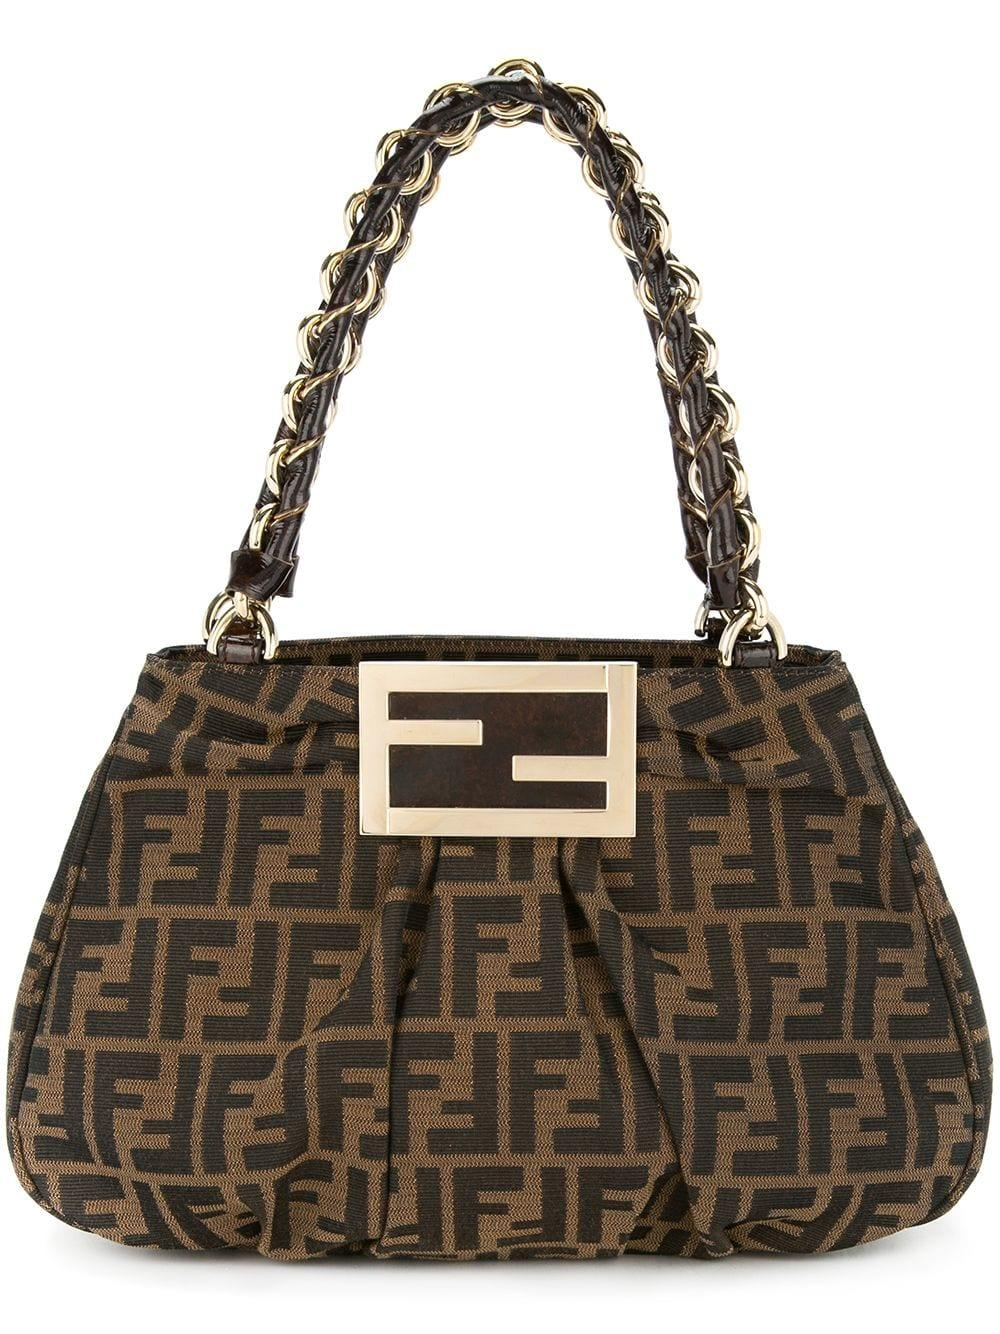 4f10a13626a4 Fendi Vintage Zucca Pattern Chain Hand Bag - Farfetch In Brown ...